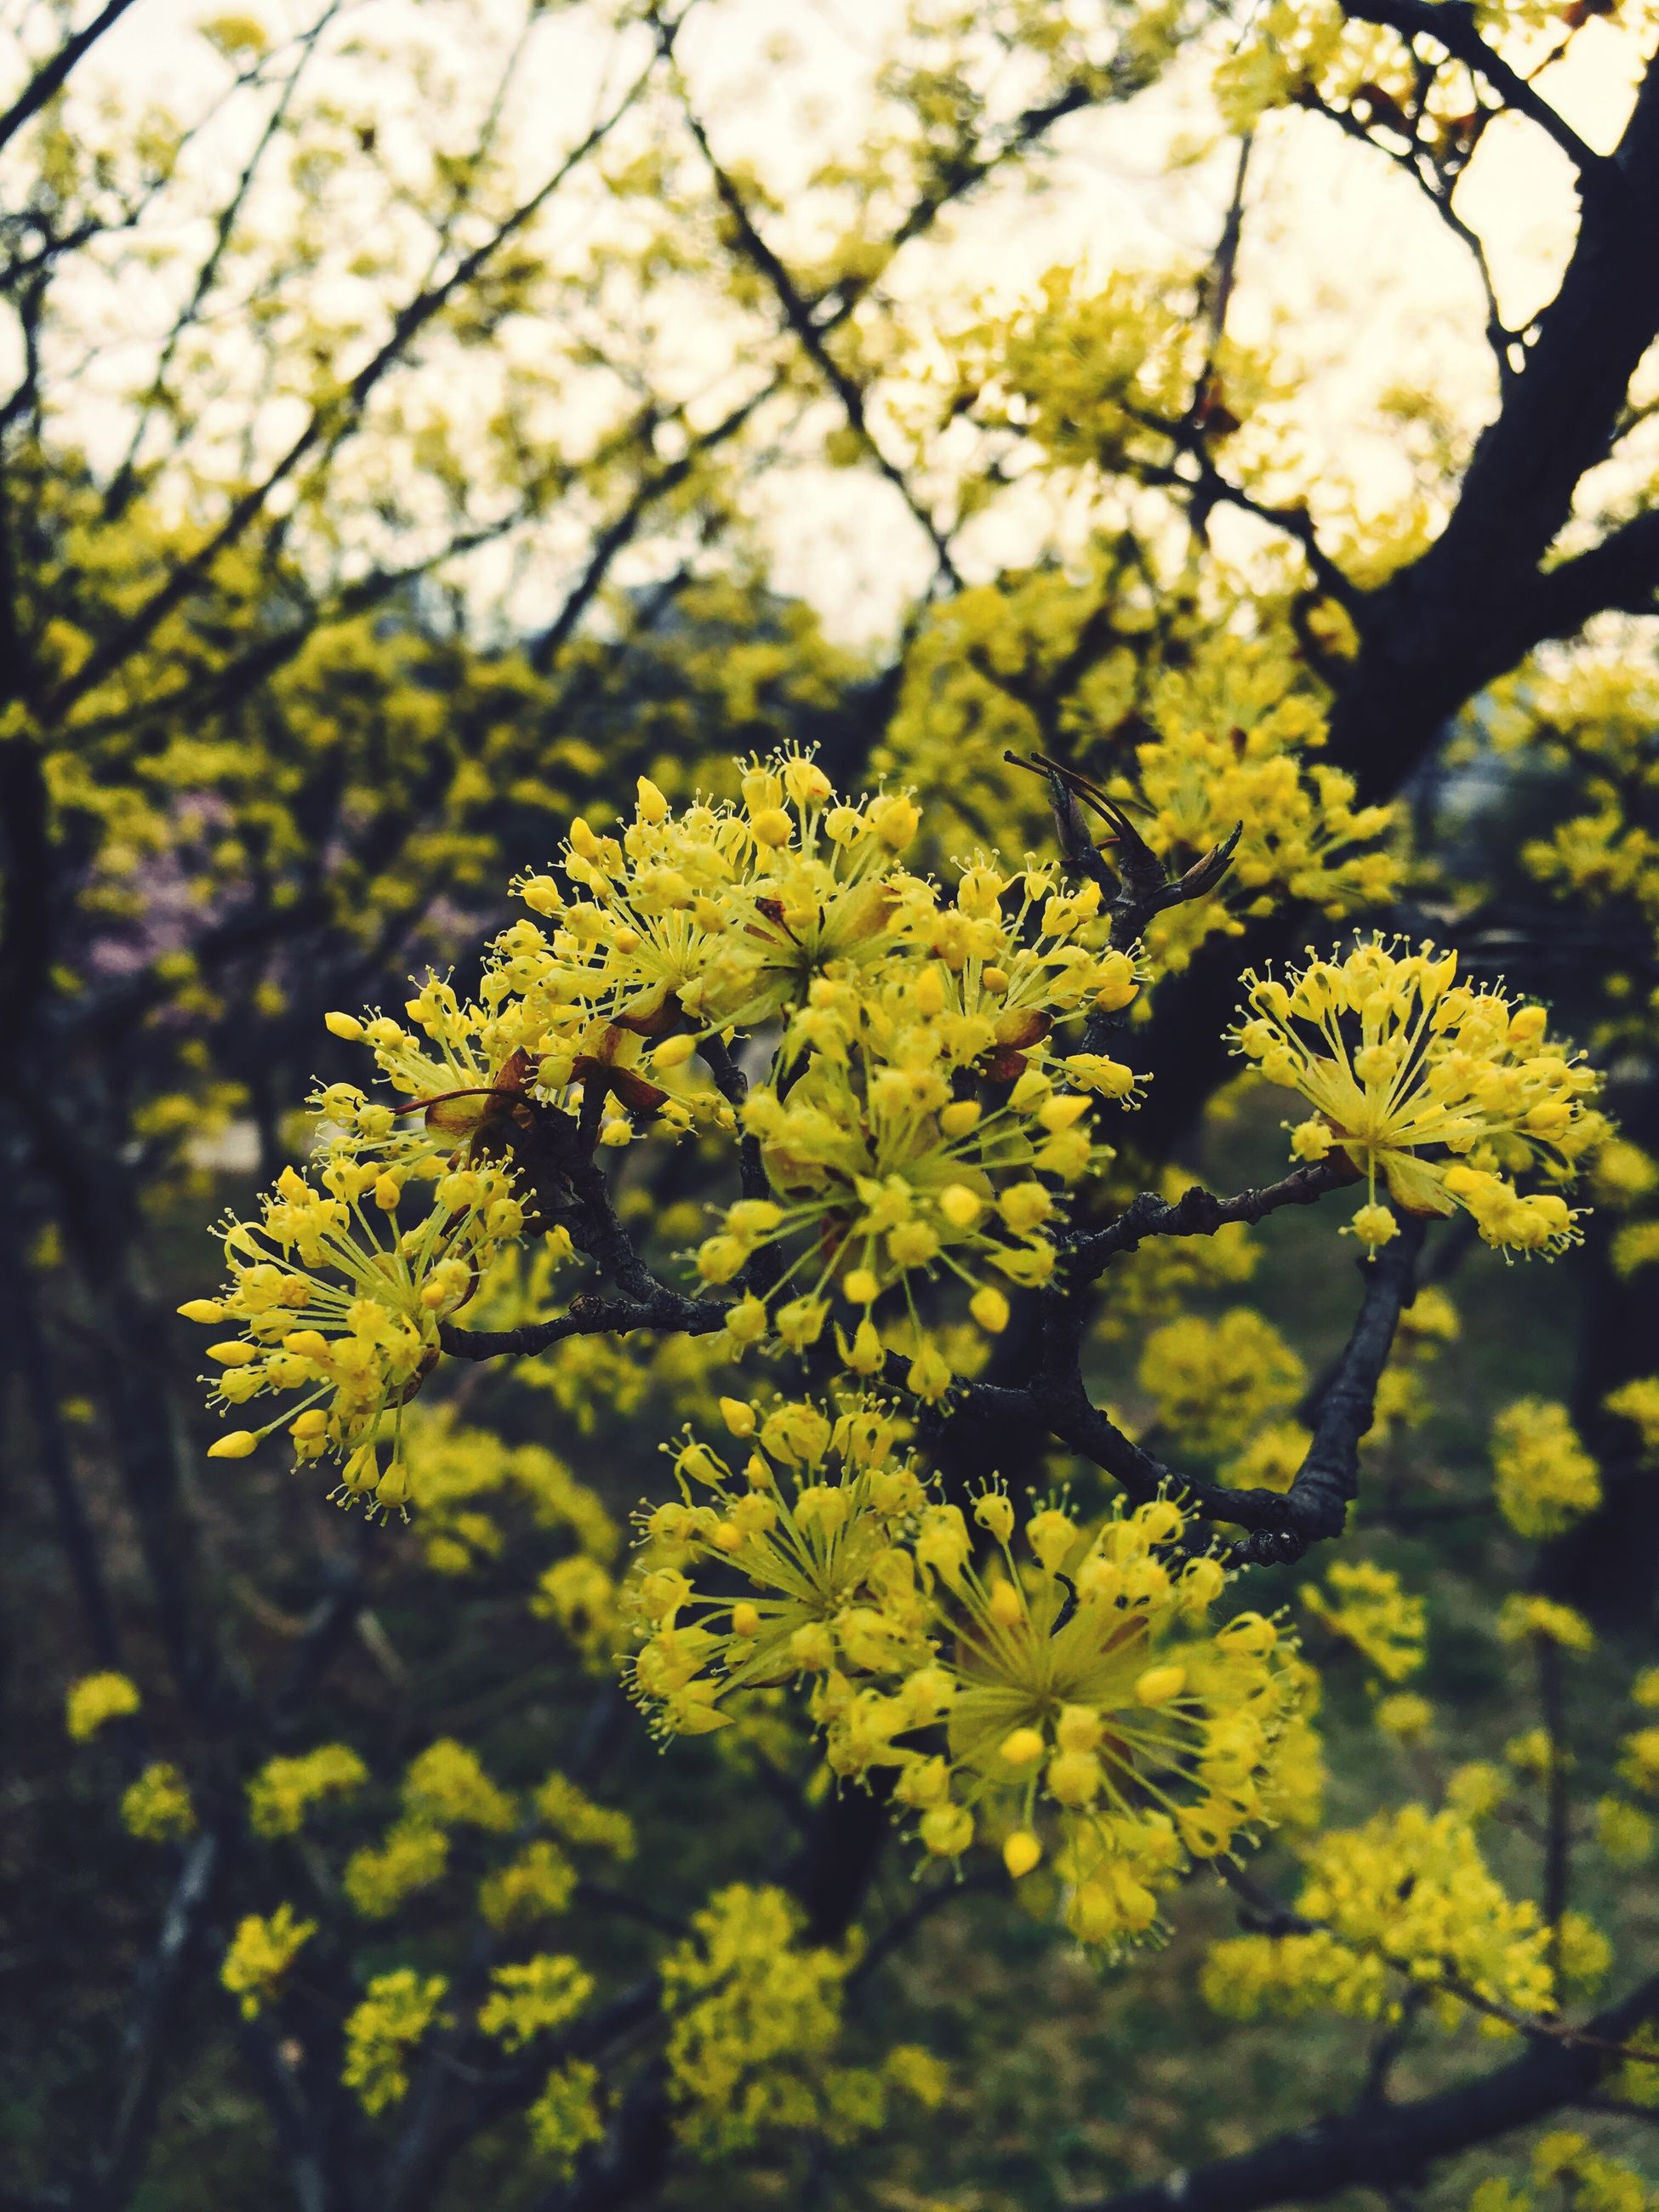 nature, growth, yellow, beauty in nature, flower, close-up, outdoors, branch, no people, plant, day, tree, fragility, freshness